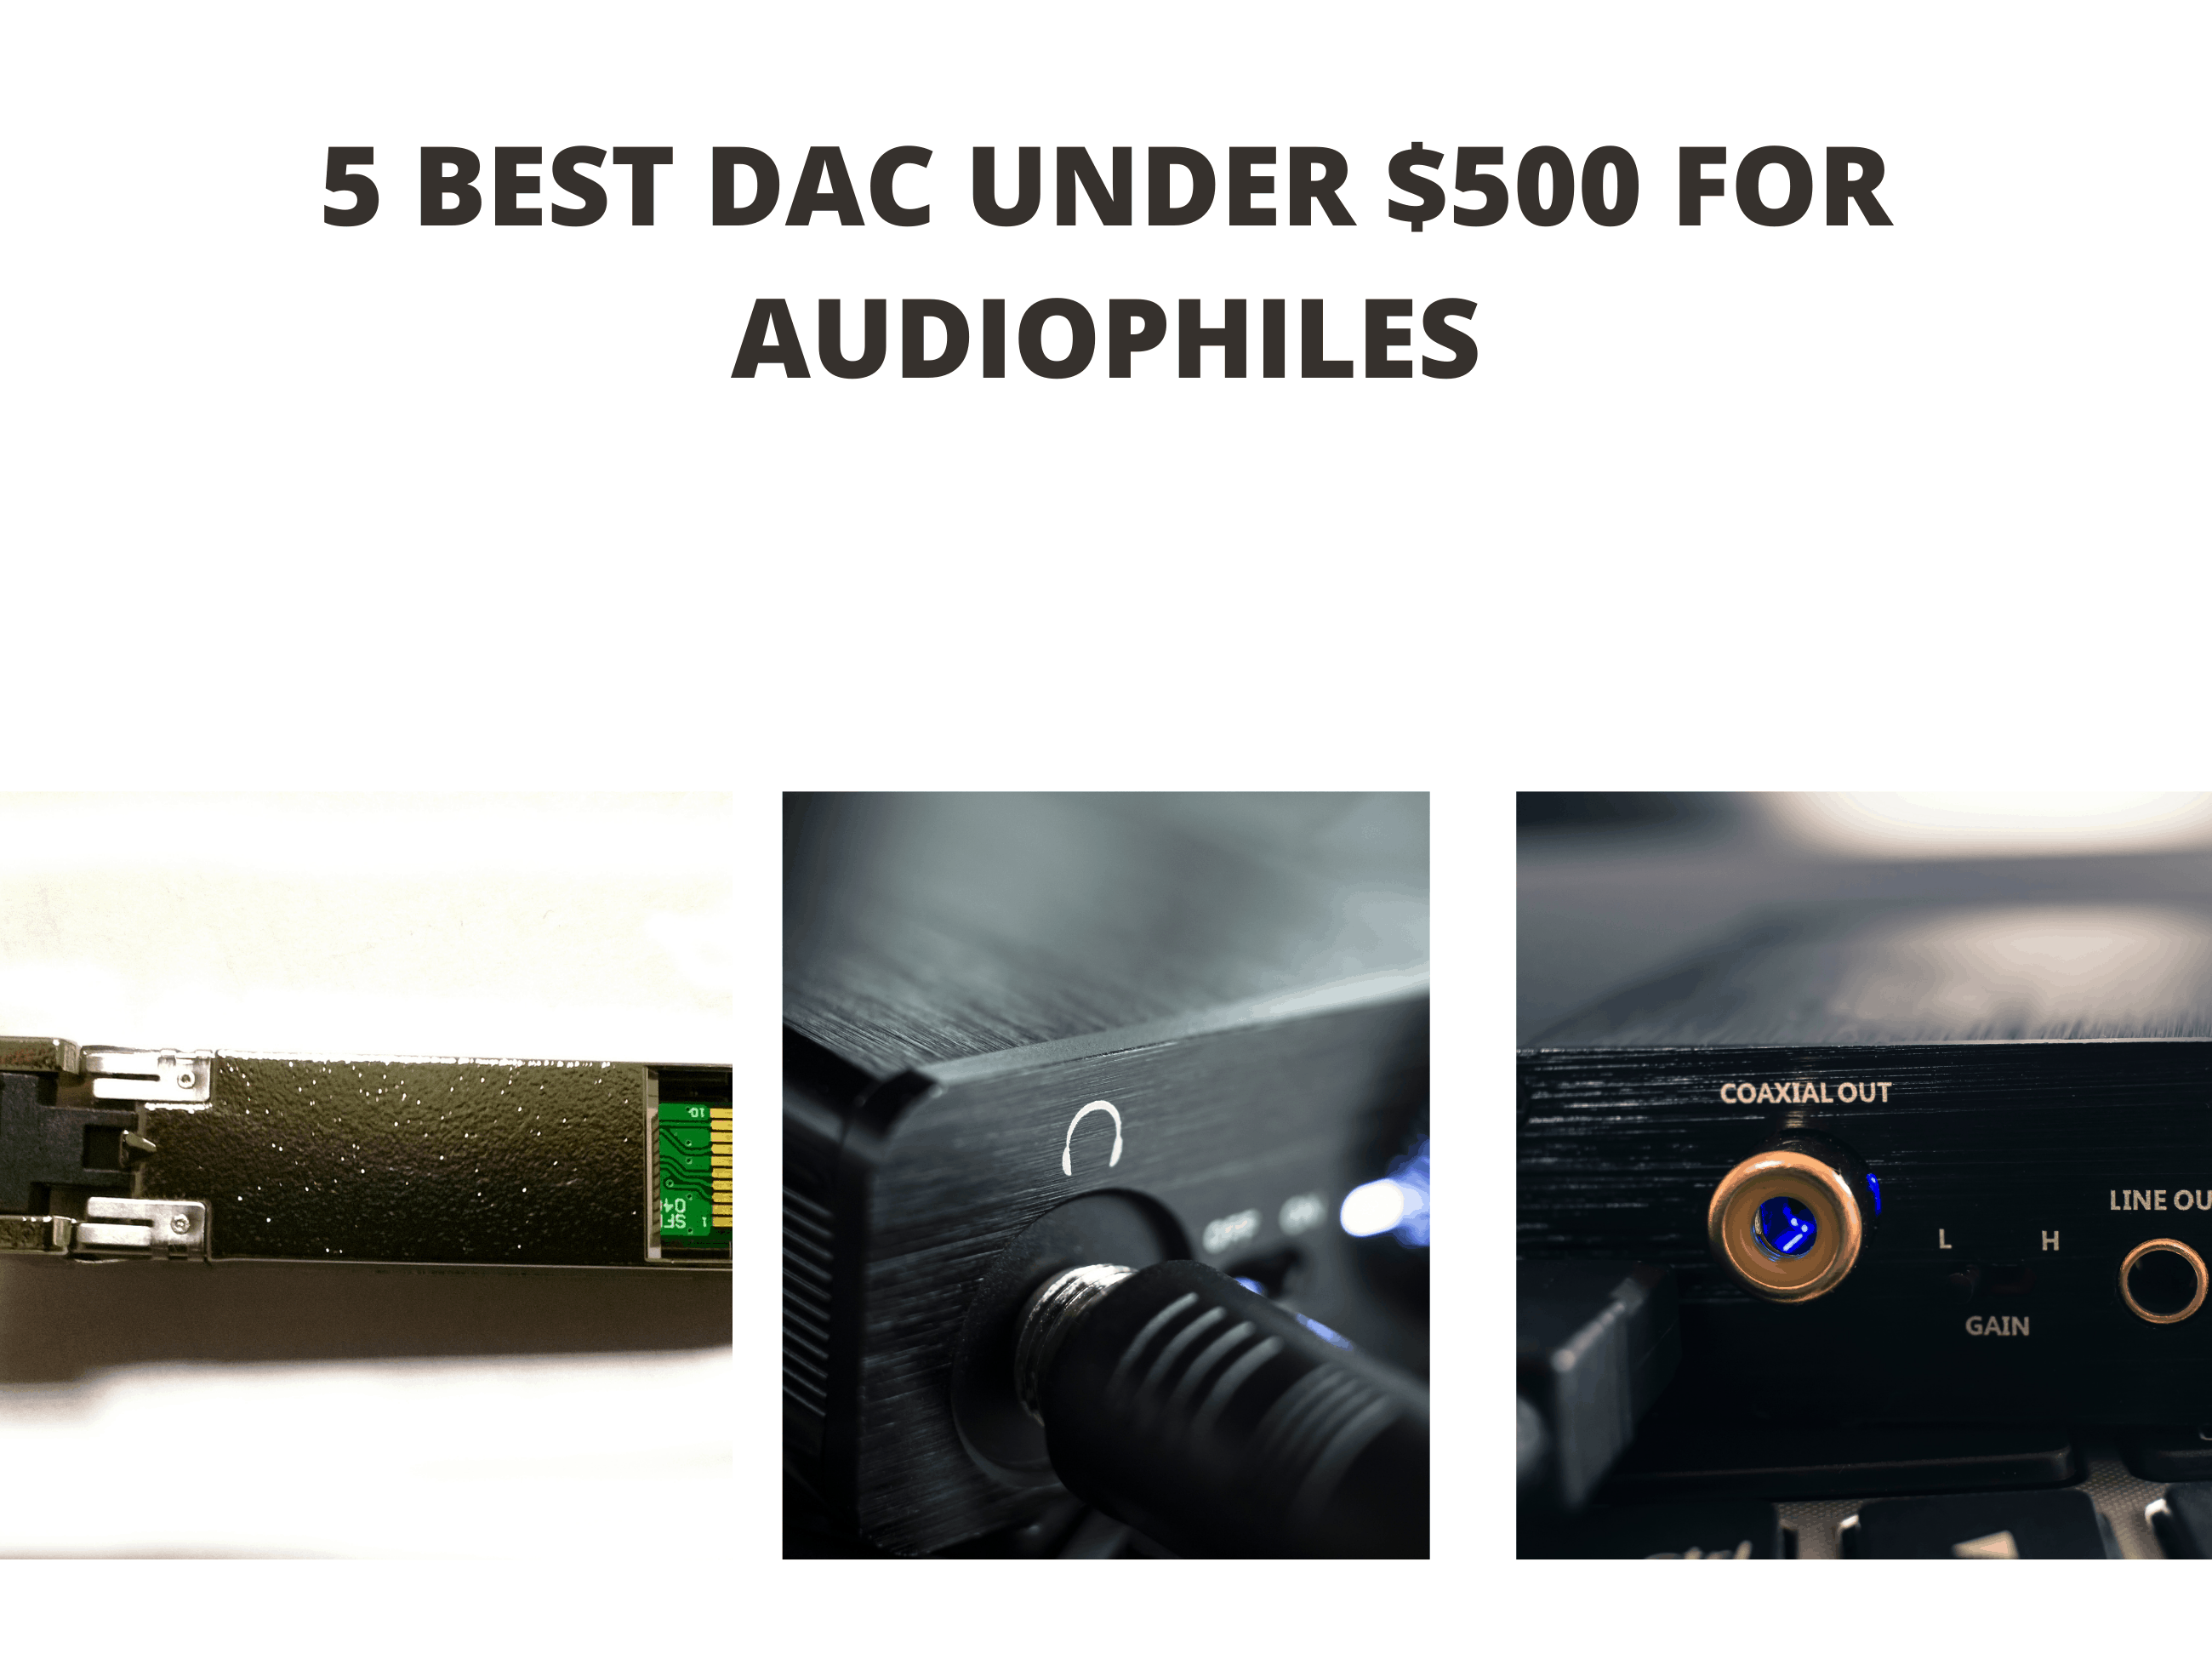 5 Best DAC Under $500 for Audiophiles